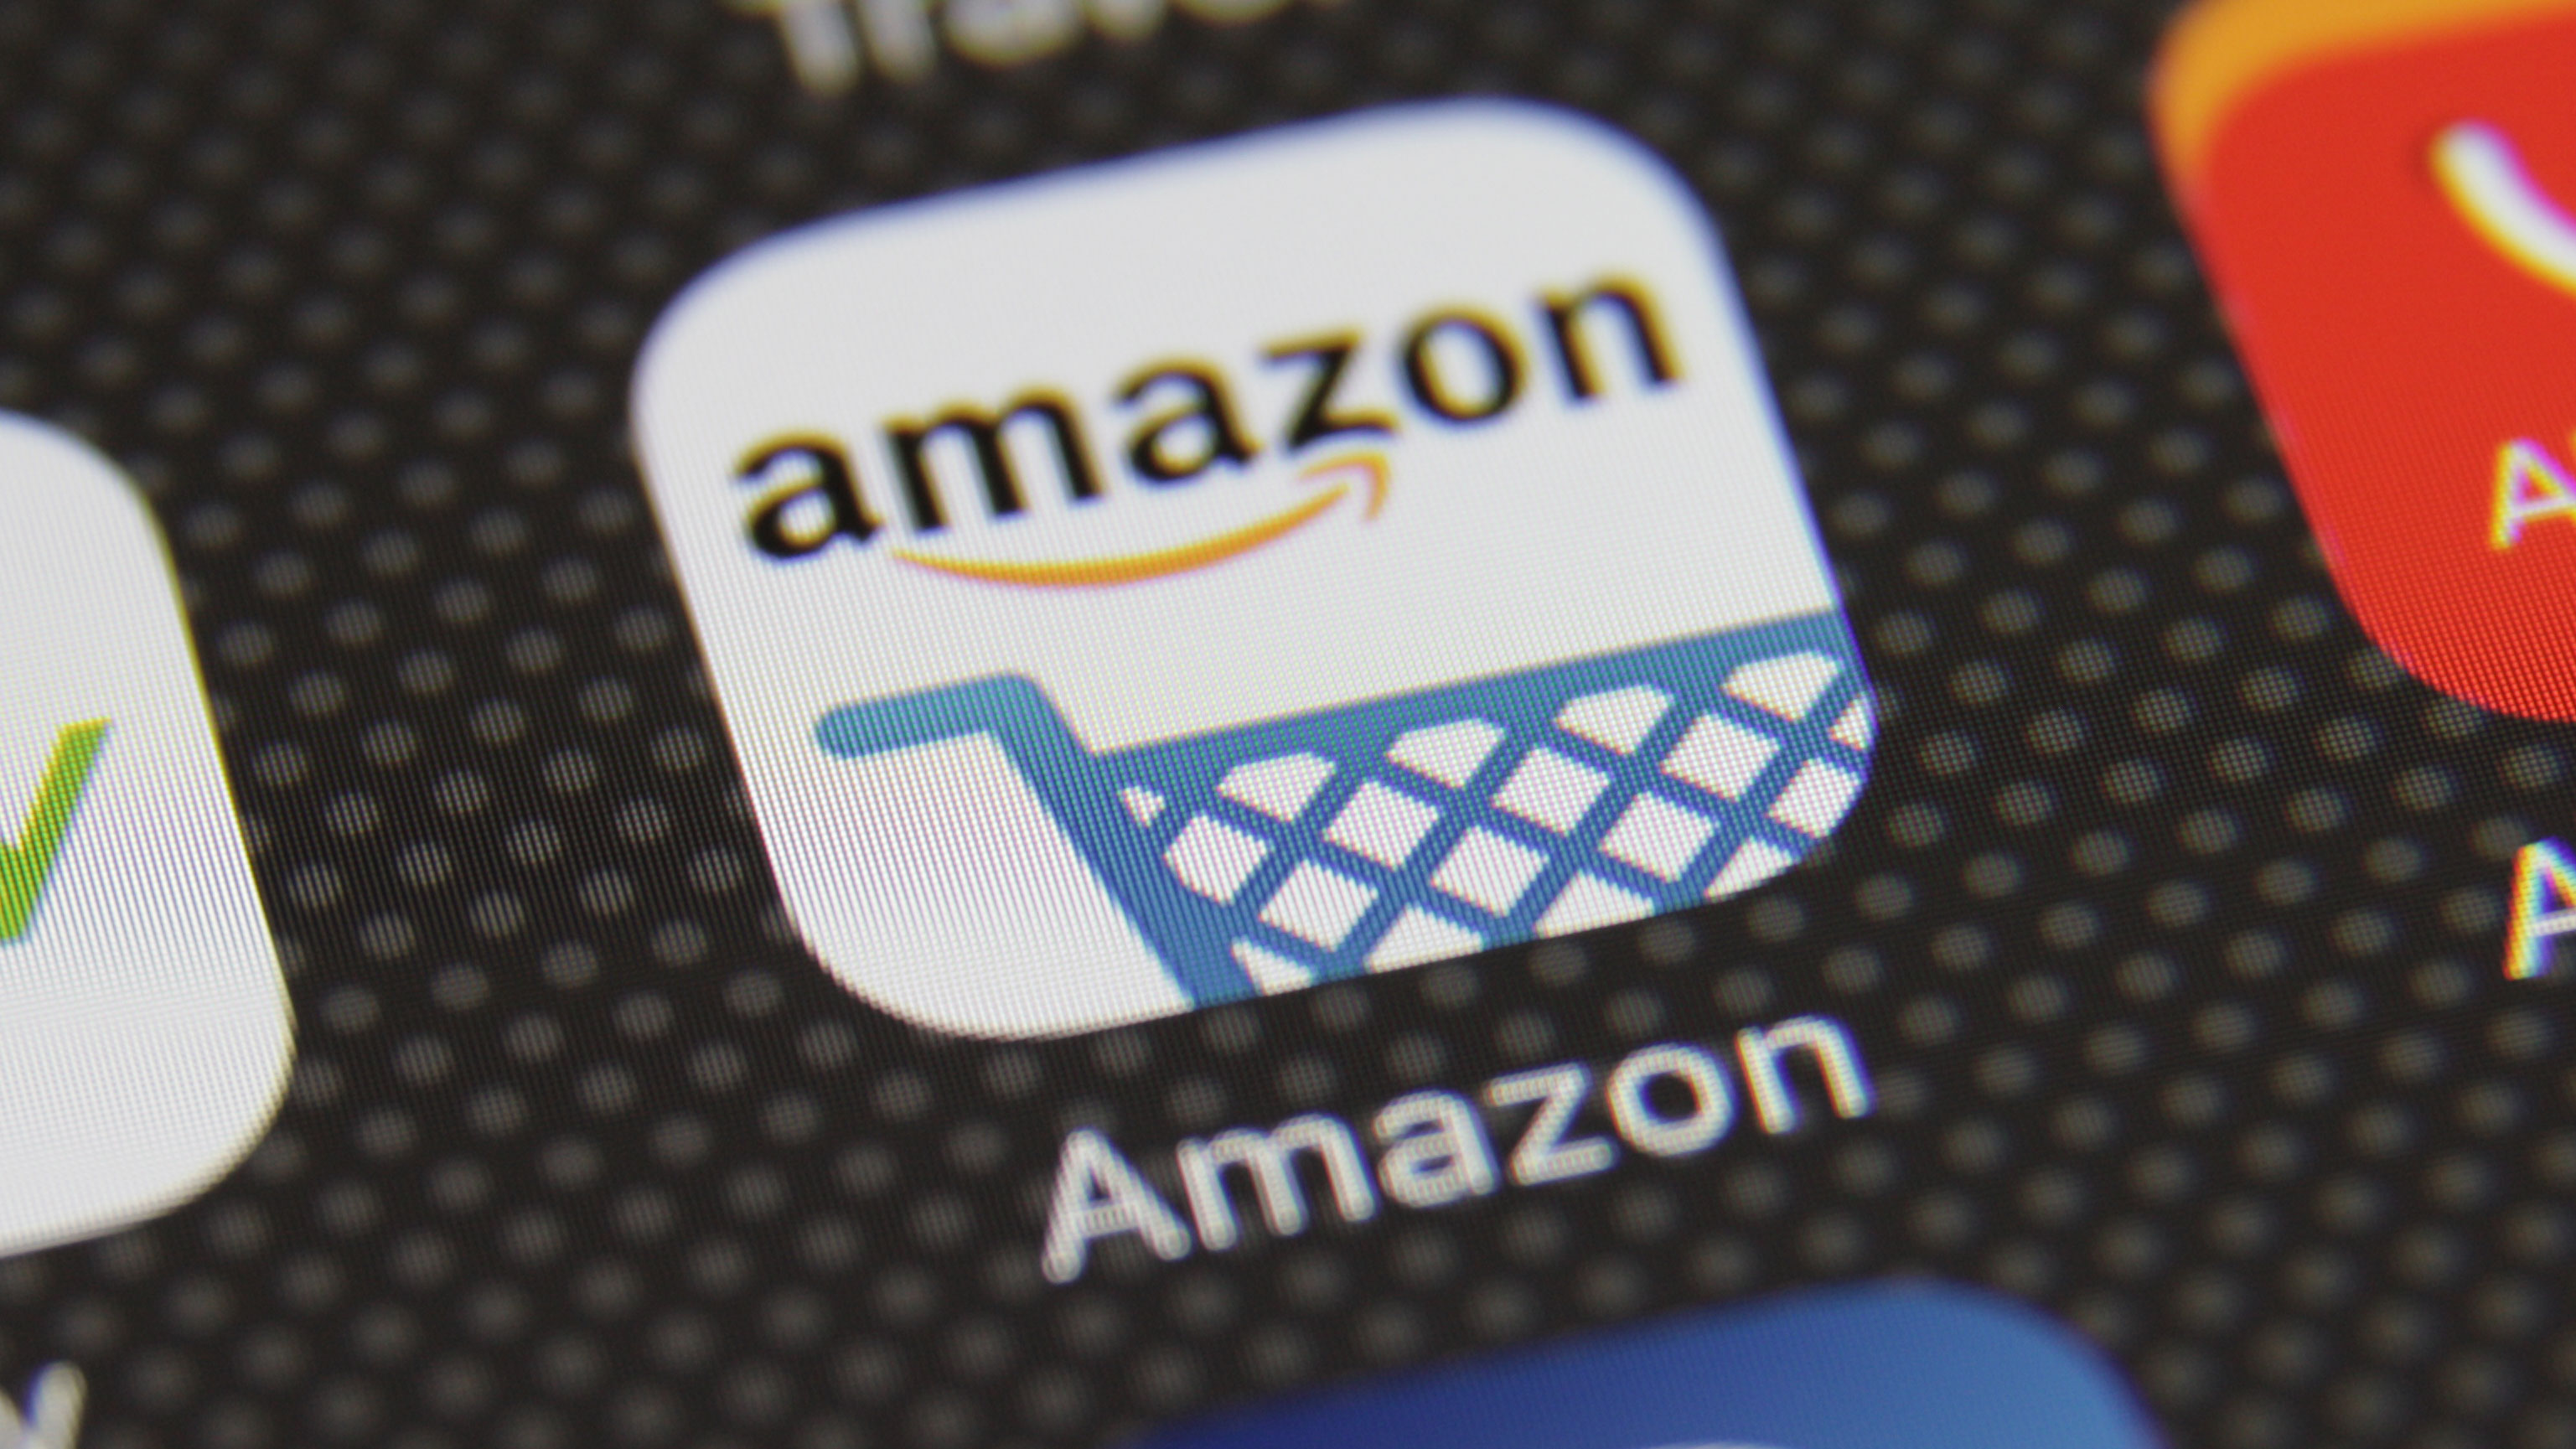 d3a3acf7e Year after year the e-commerce giant has been able to improve its  performance and break previous shopping records. Source: TechCrunch